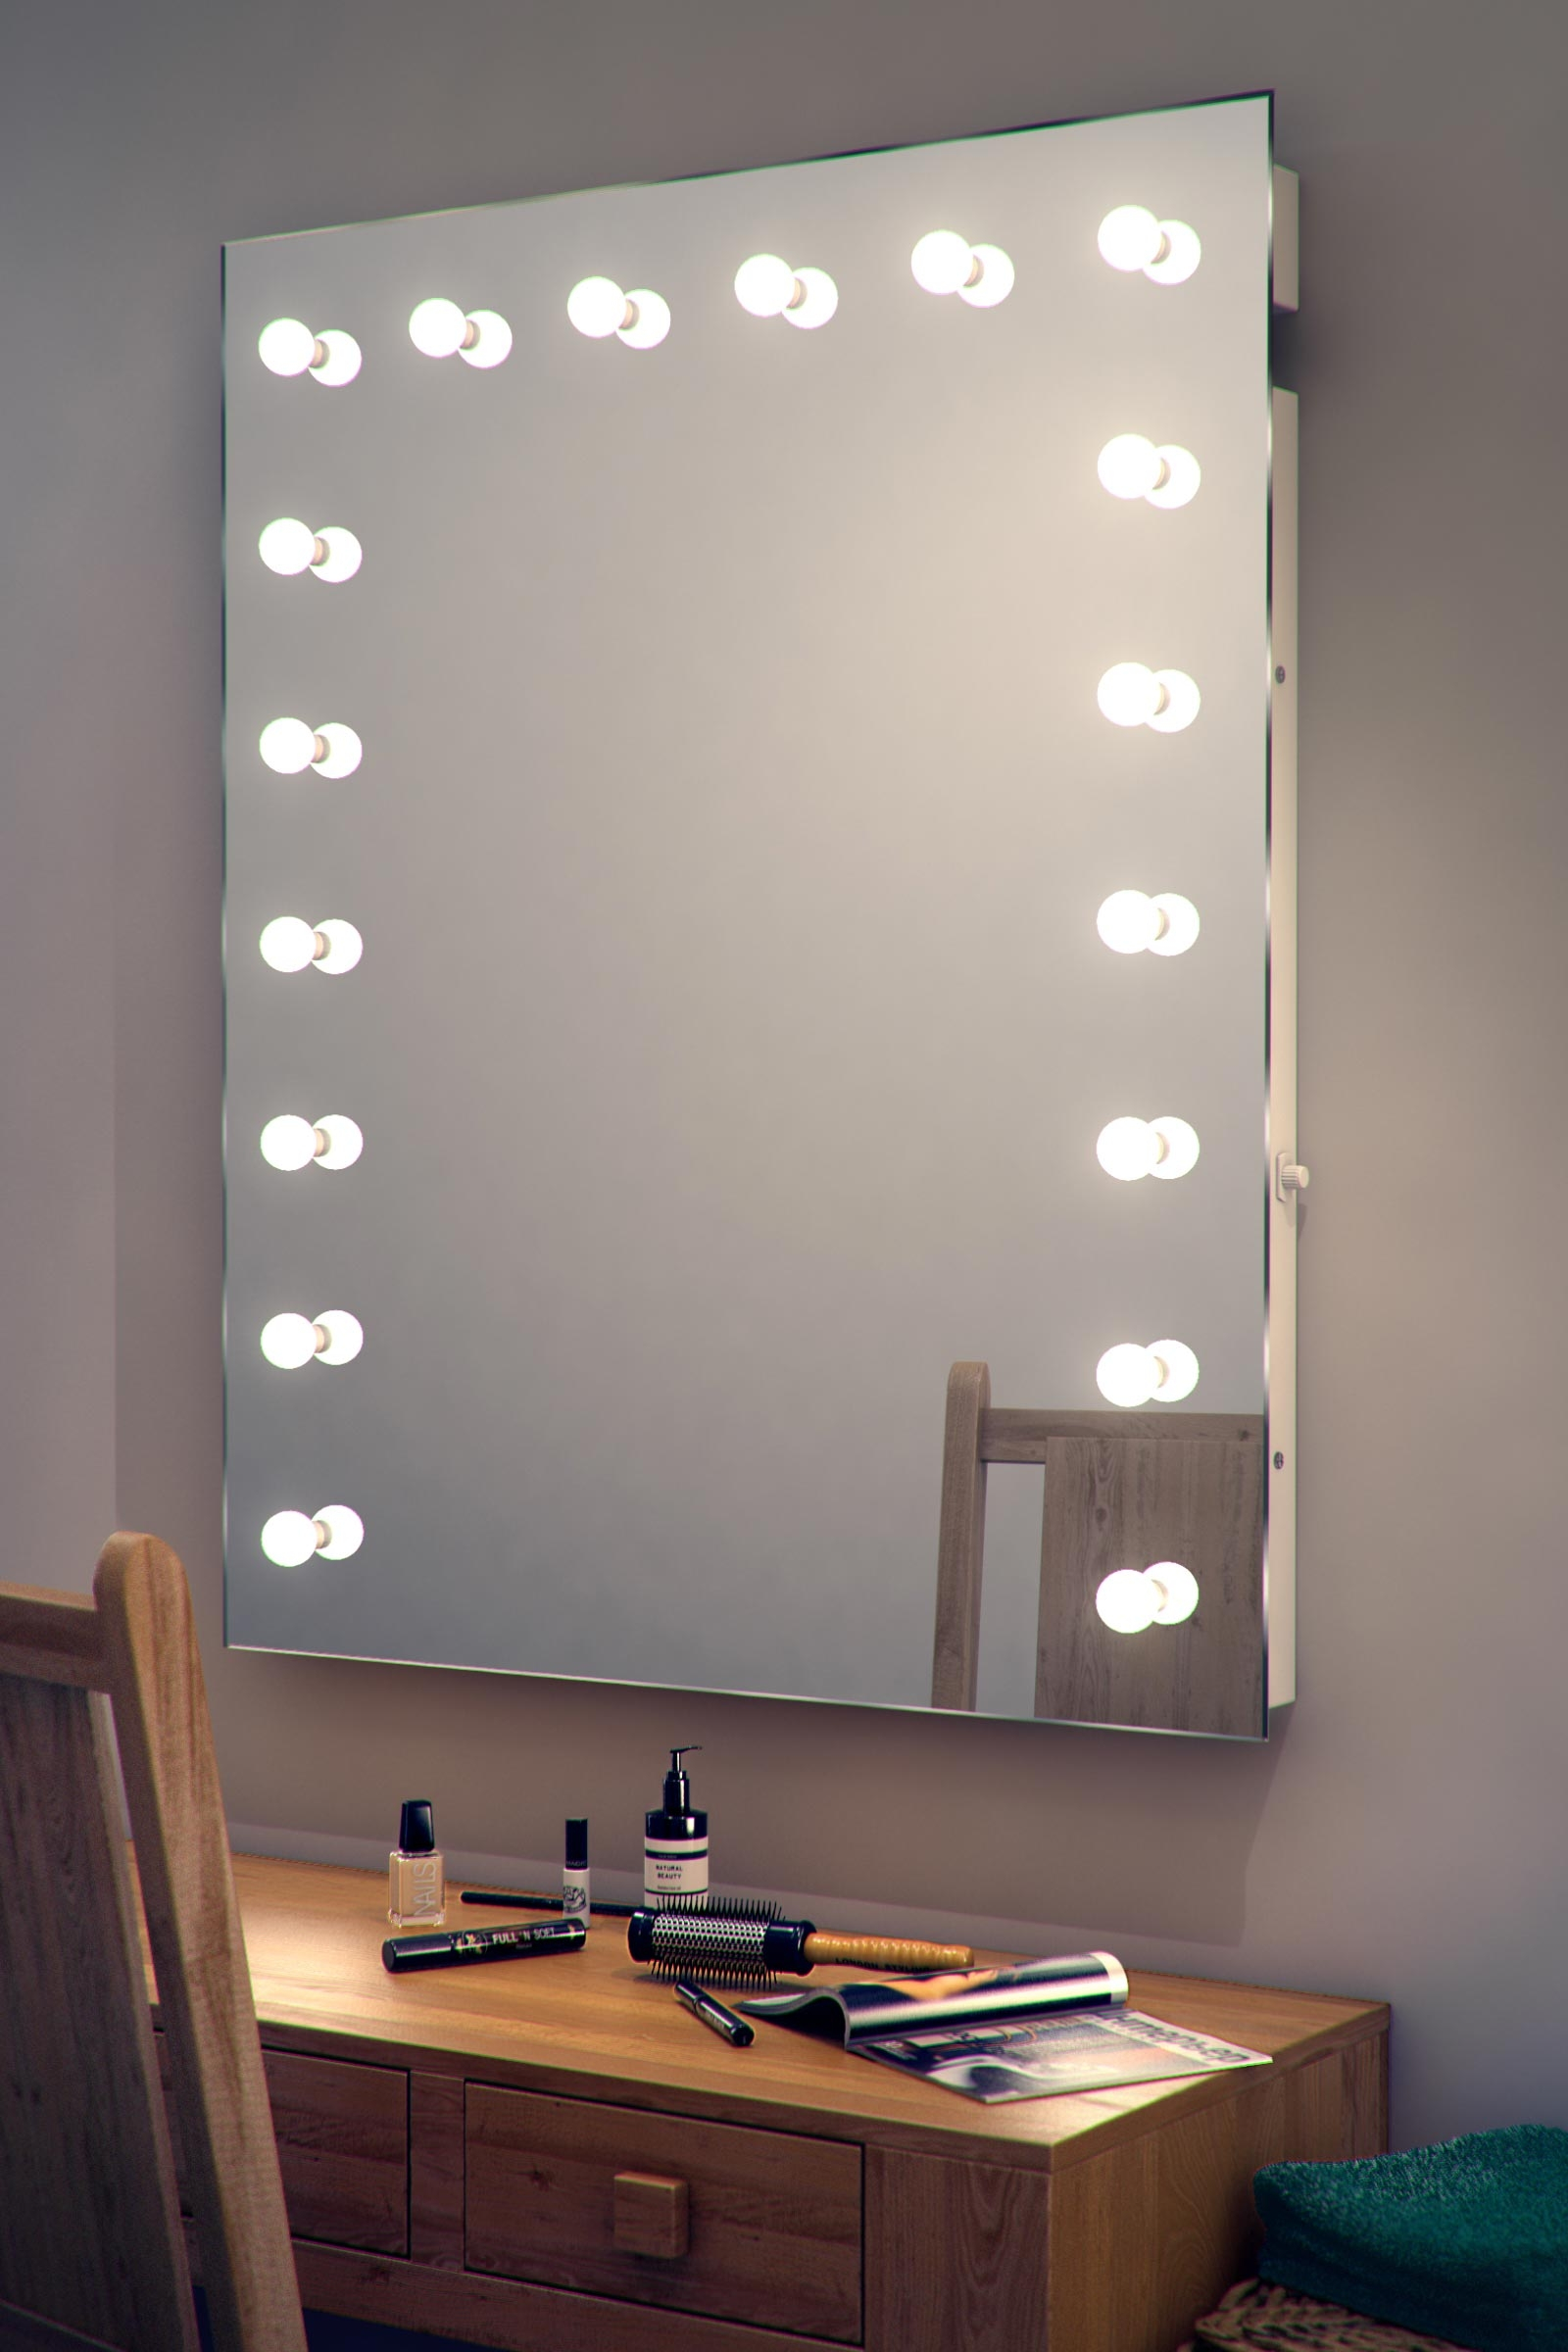 Wall Mirror With Lights Around It